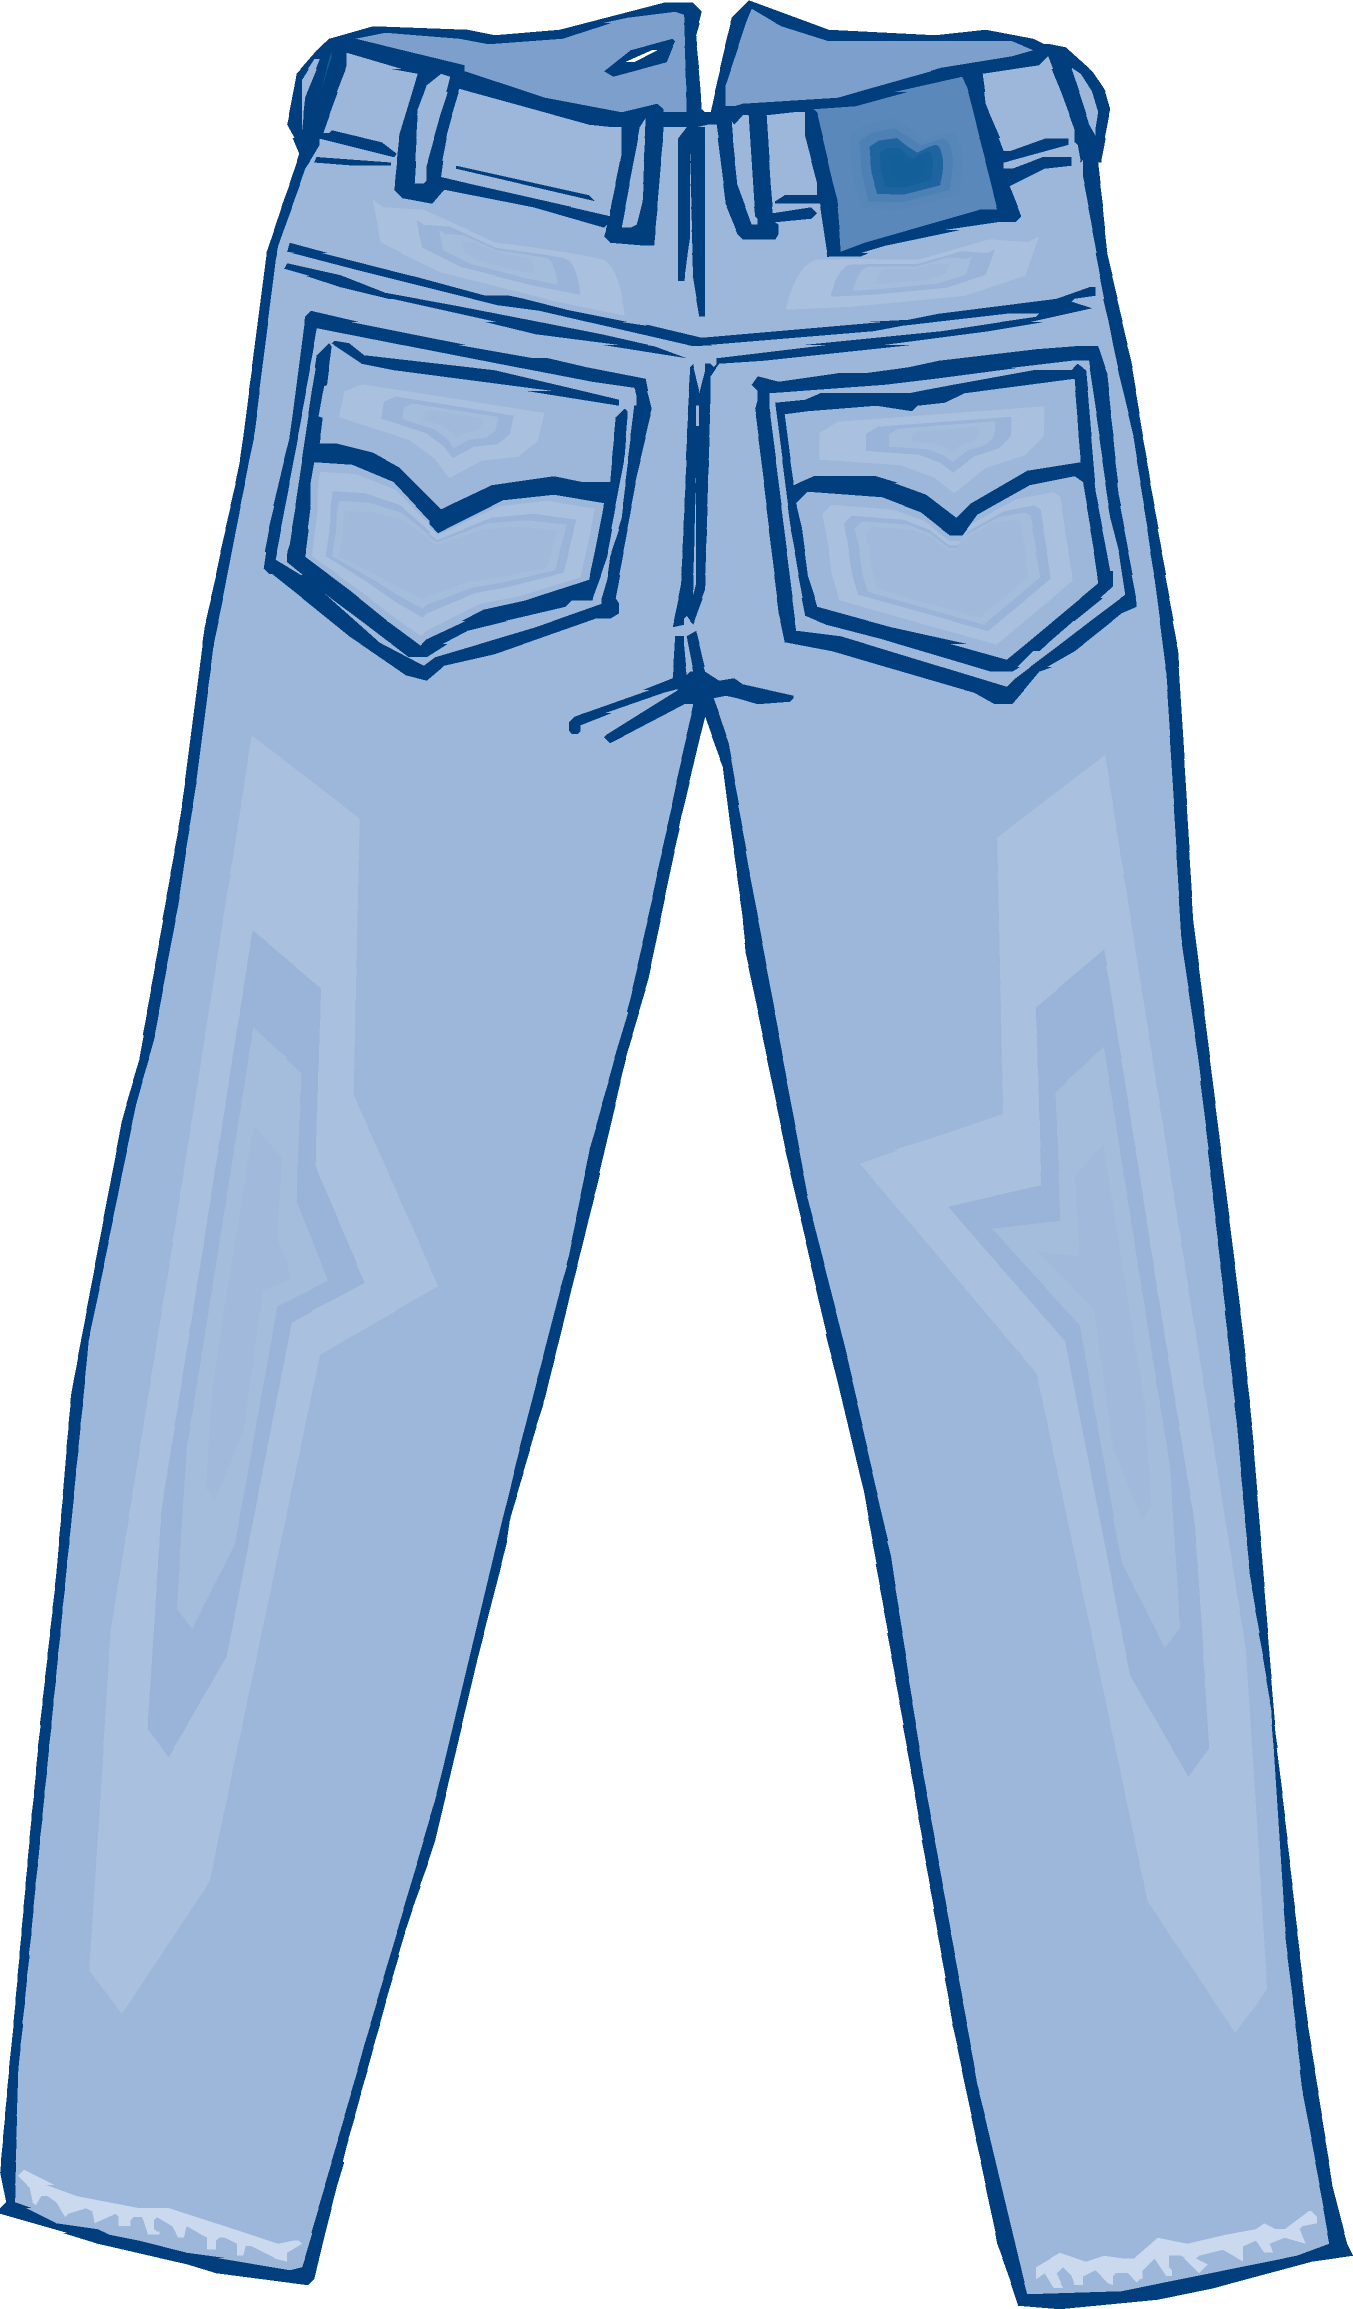 graphic free download Jeans clipart. Free cliparts download clip